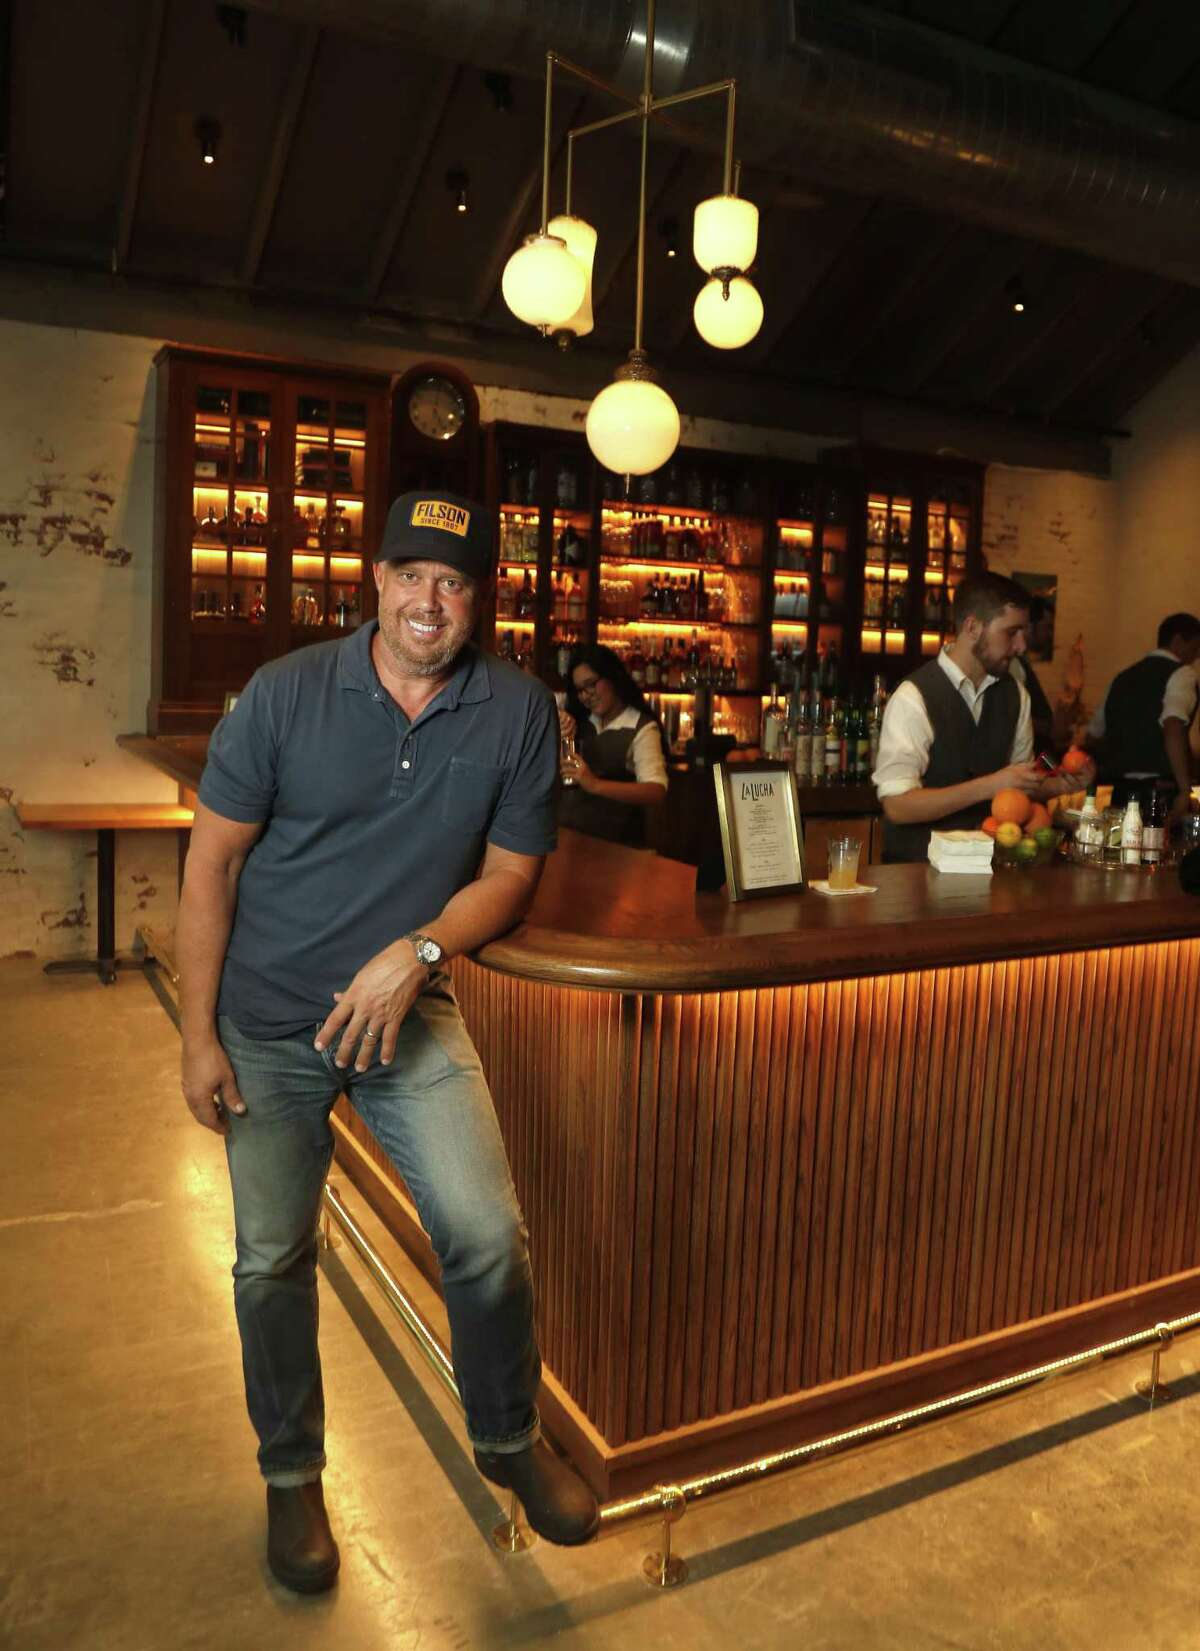 Atlanta-based chef/restaurateur Ford Fry has opened two new restaurants in Houston - La Lucha (shown) and Superica. Several of Ford's restaurant concepts, specifically La Lucha, are drawn from culinary memories of his Houston childhood.